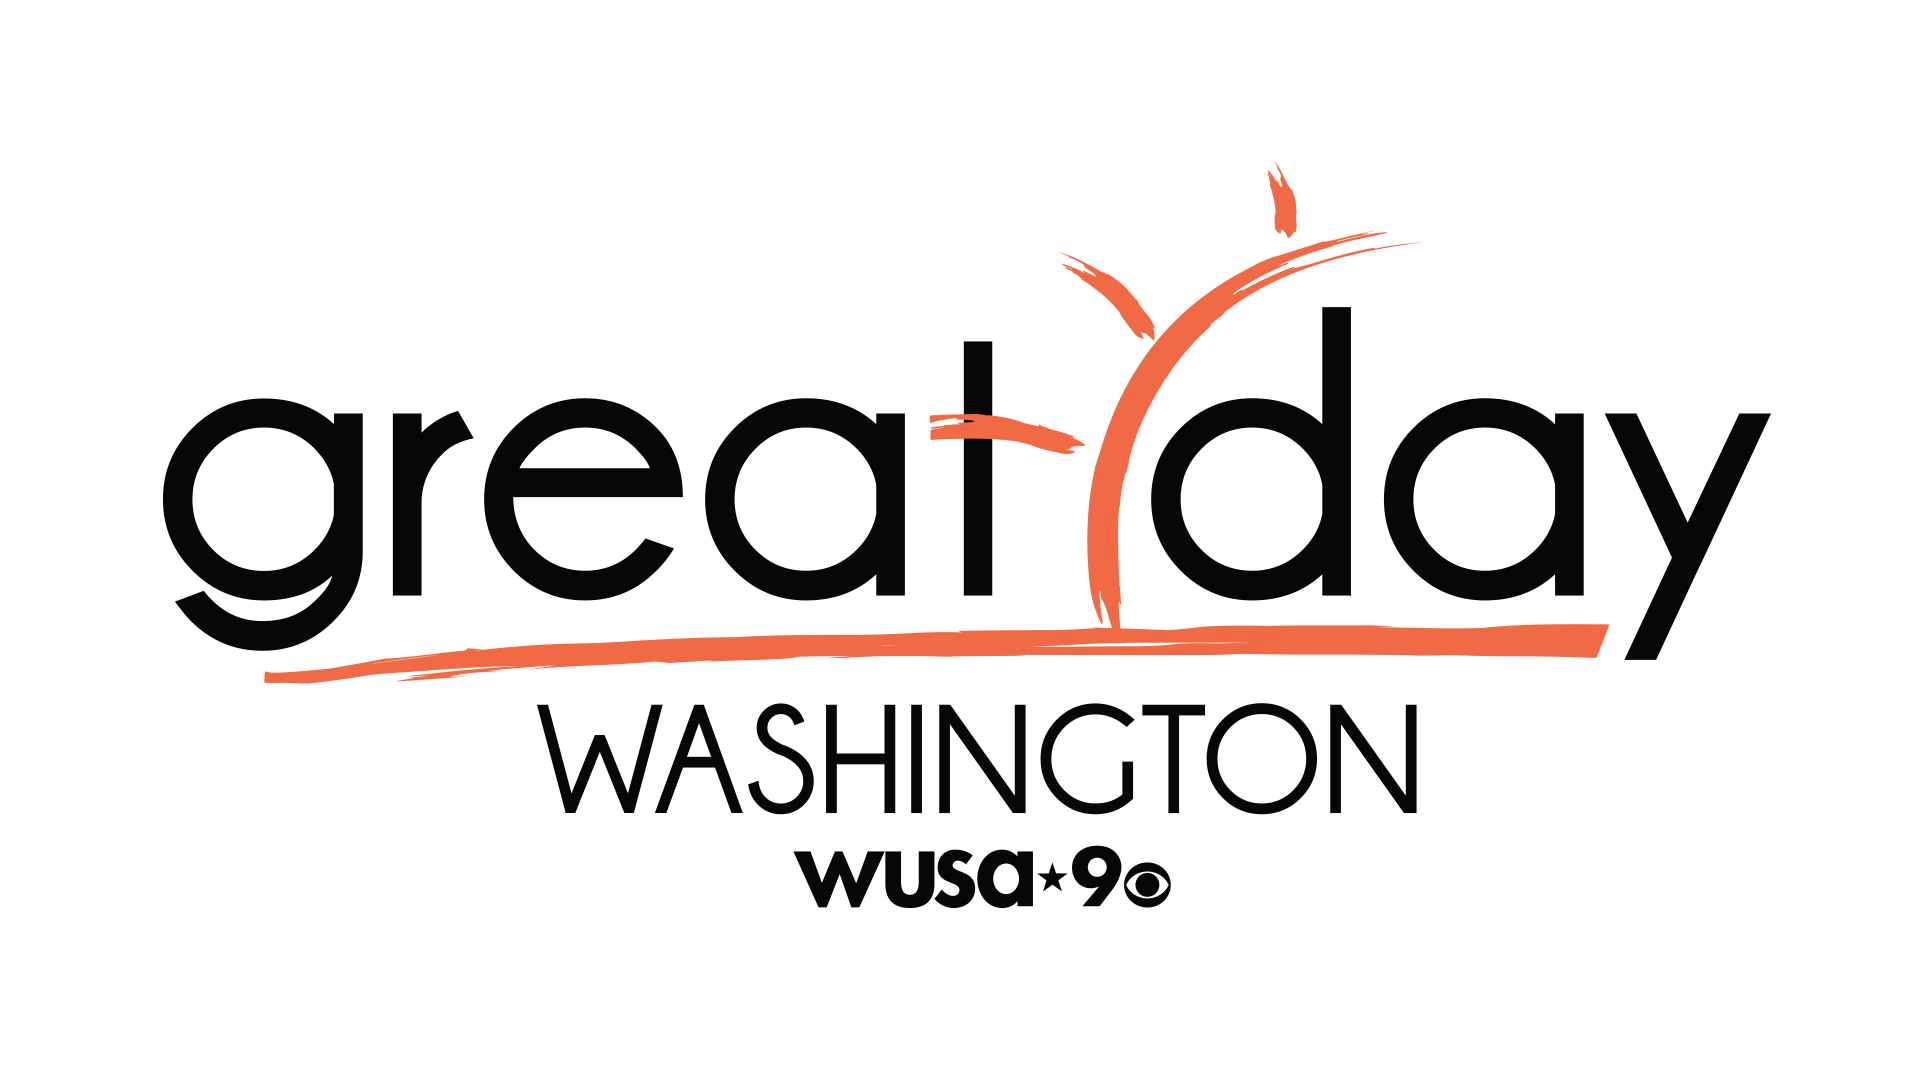 Great-Day-Washington-WUSA-COLOR-LightBG.png